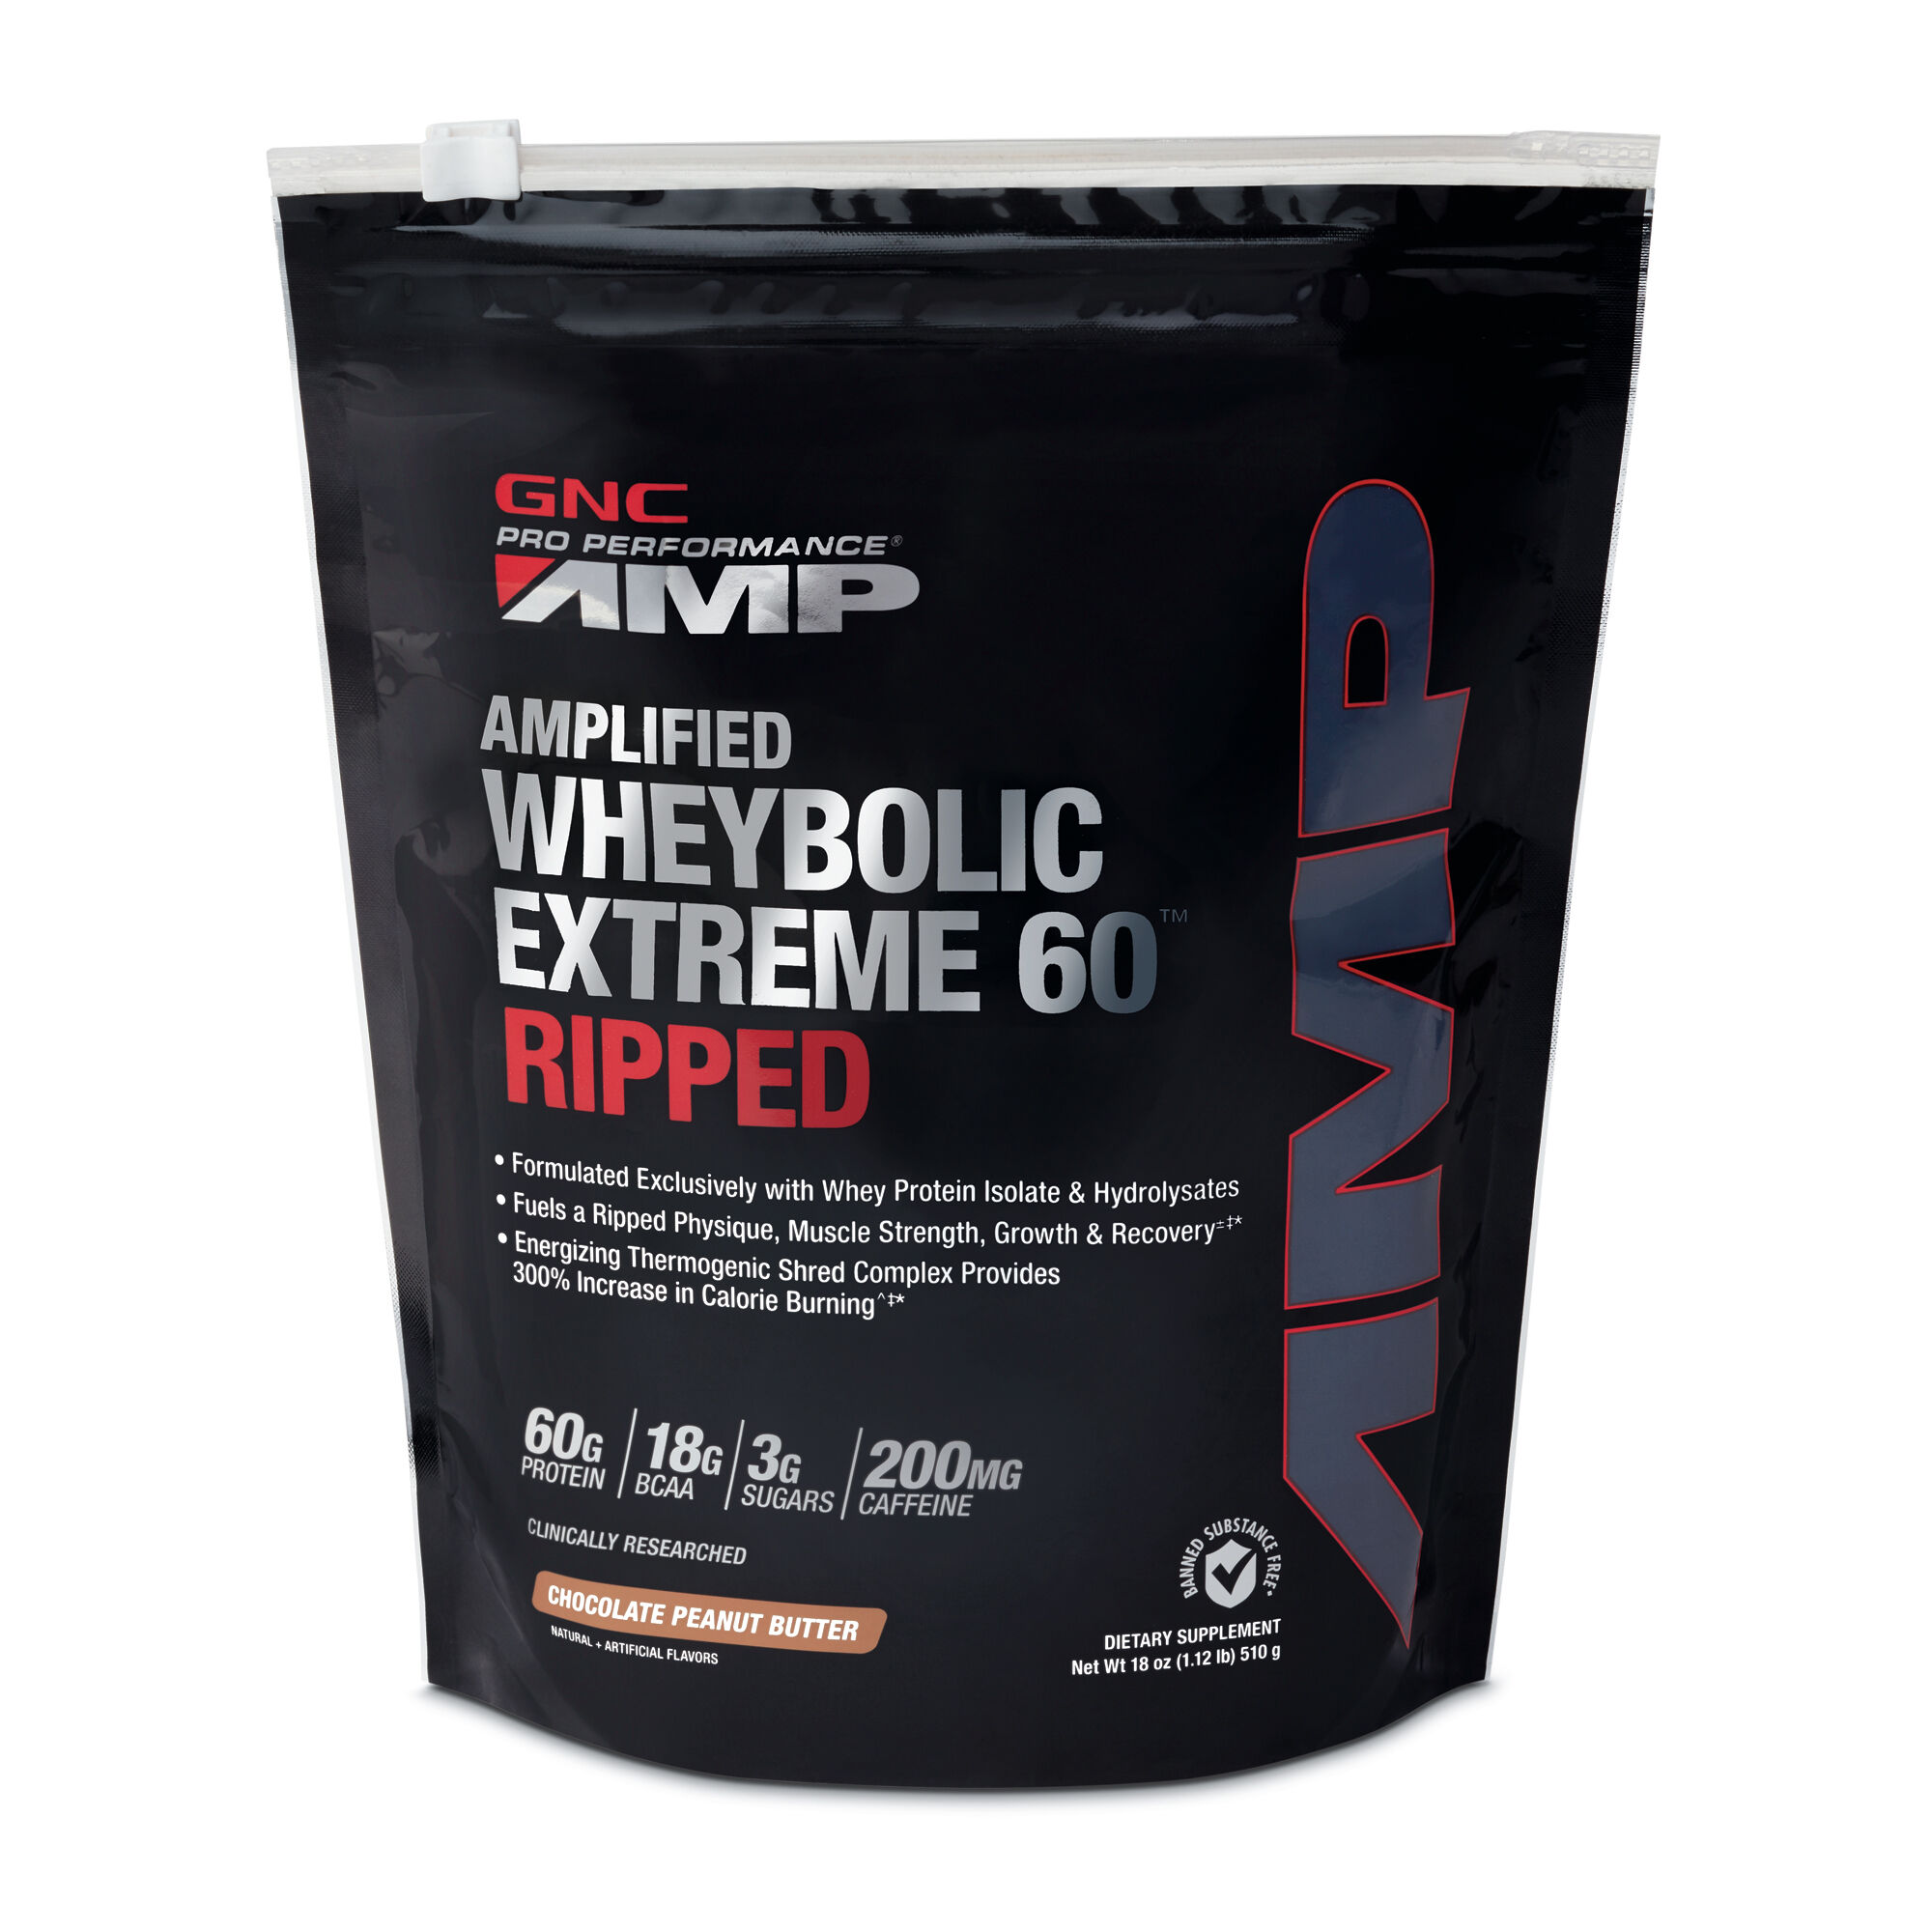 Fat loss muscle gain supplement